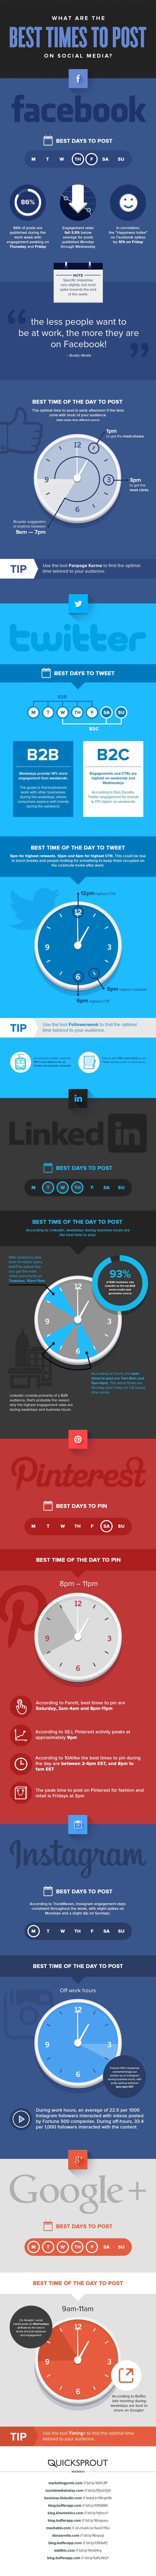 best-time-to-post-social-media